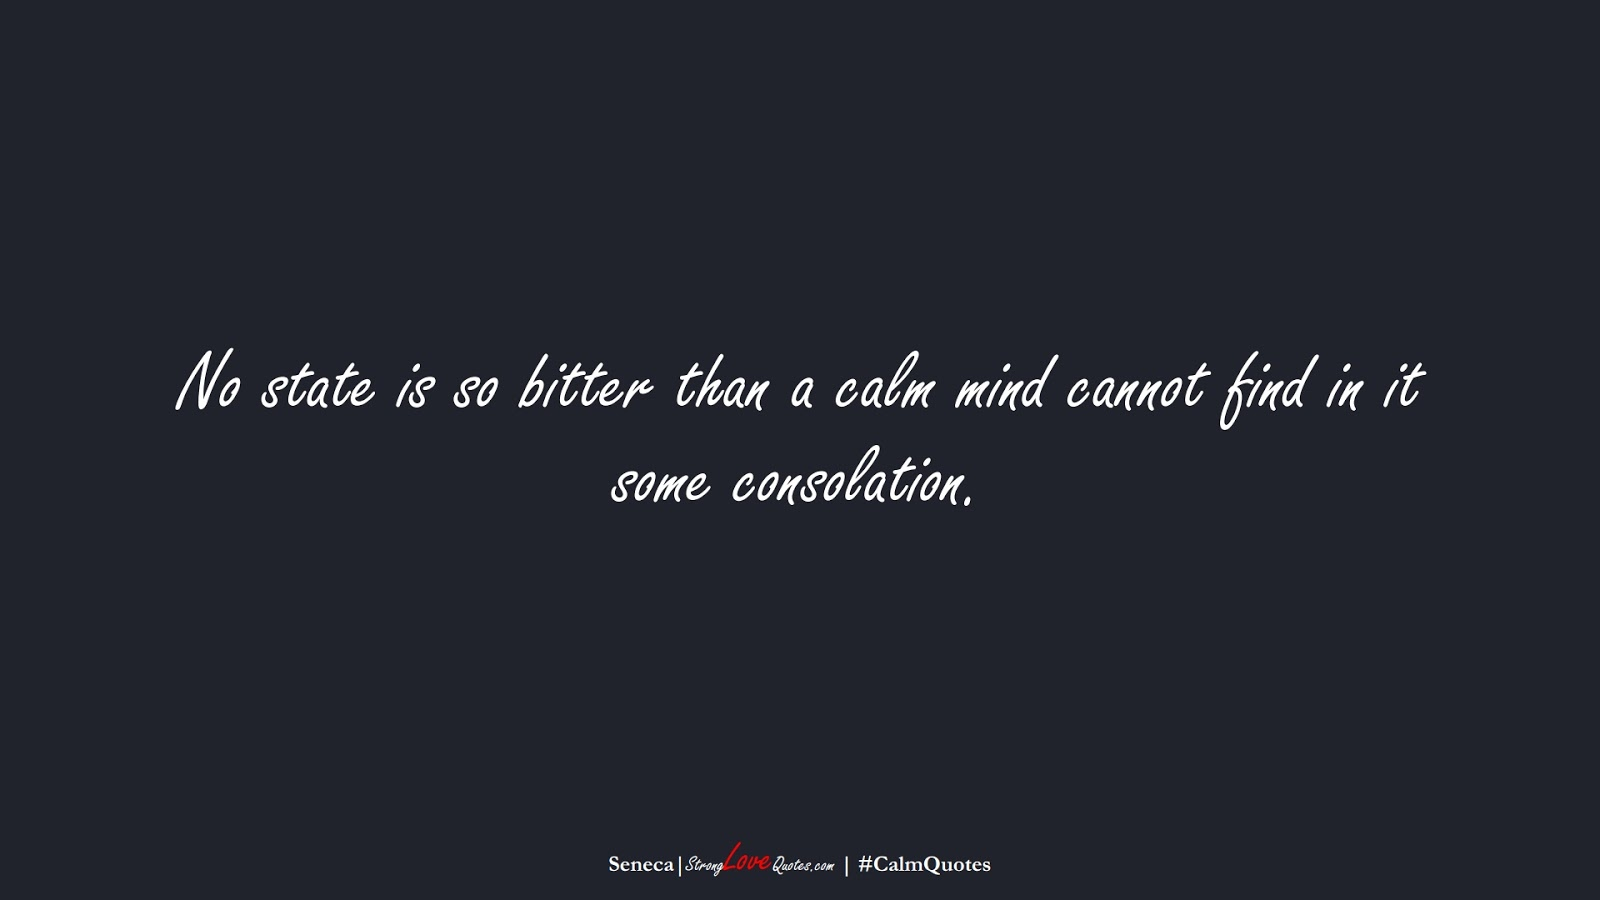 No state is so bitter than a calm mind cannot find in it some consolation. (Seneca);  #CalmQuotes